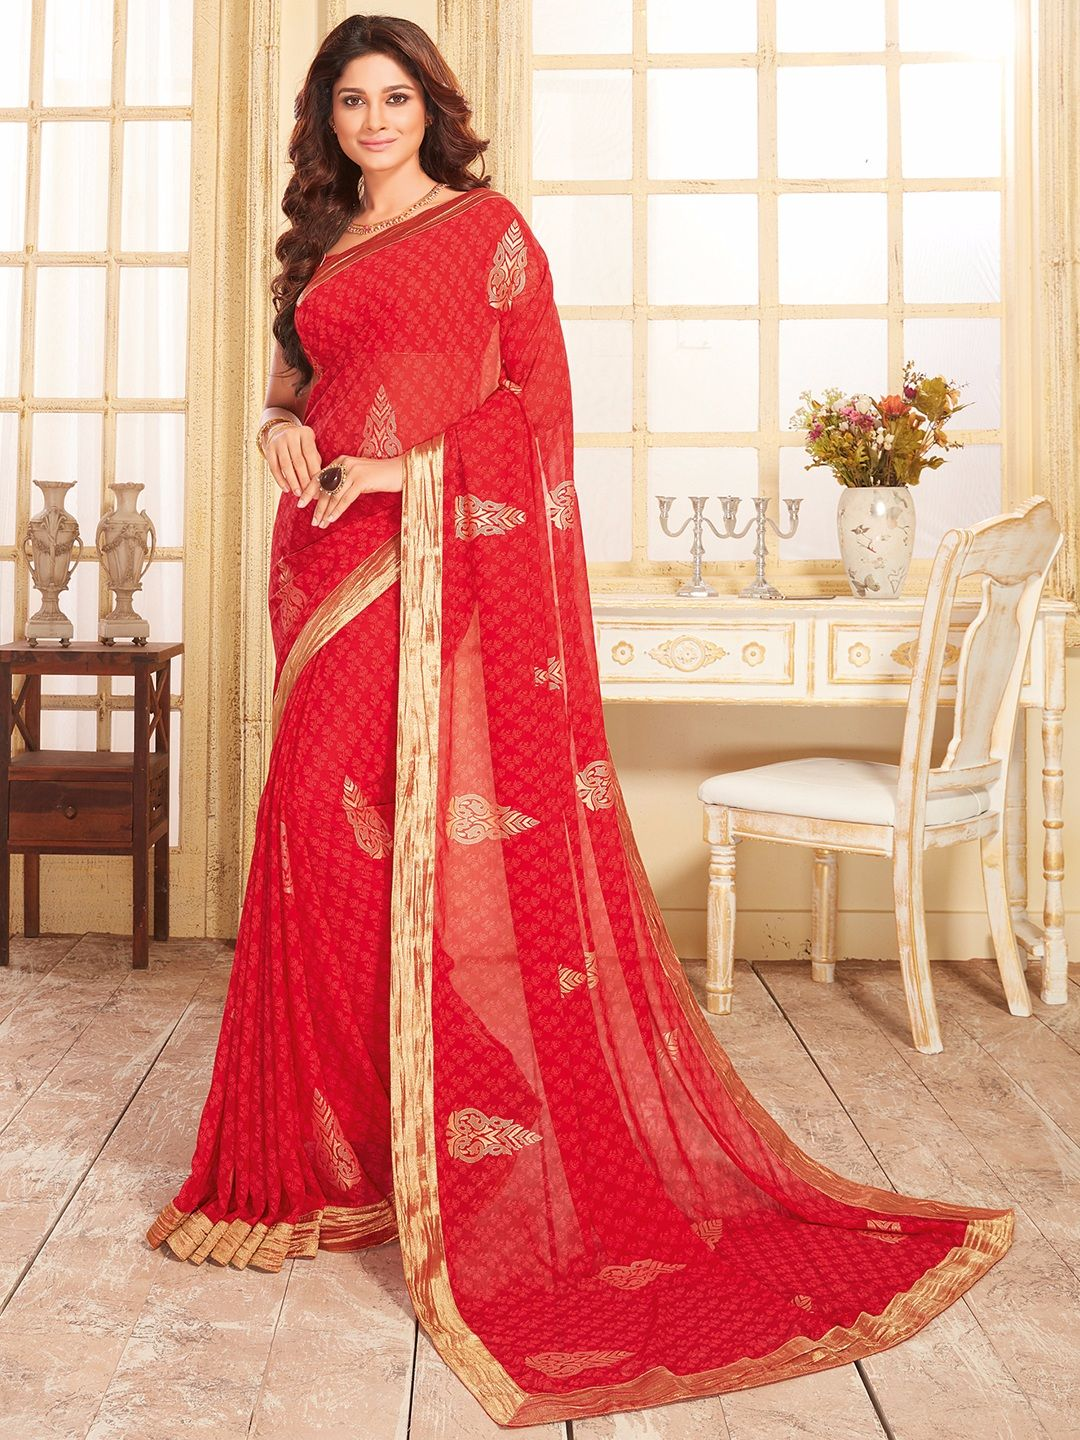 a5769267bce Shop Red georgette dressy printed saree online from G3fashion India. Brand  - Vishal Prints